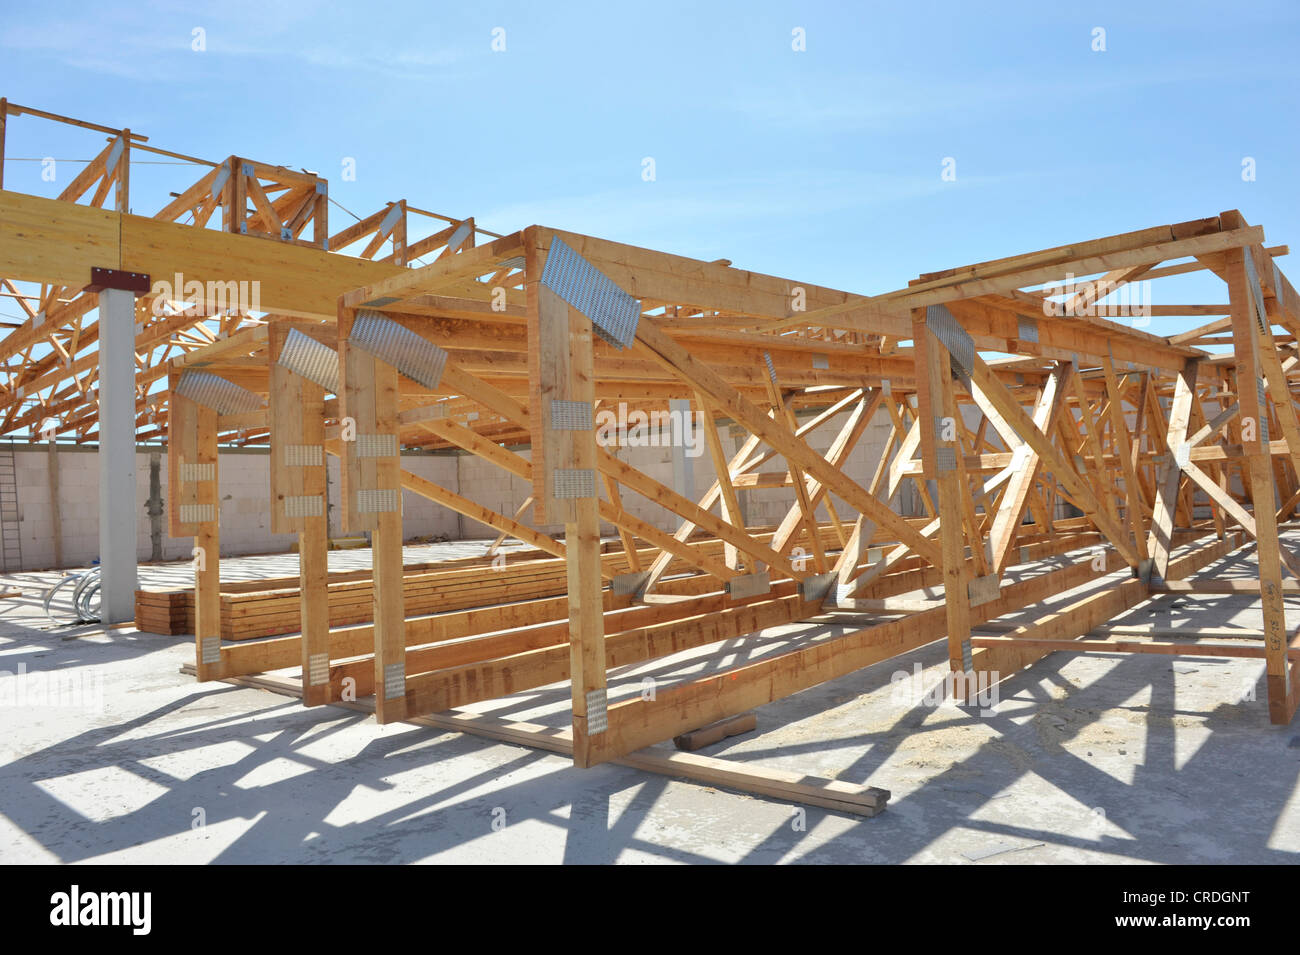 Wooden Roof Trusses Stock Photos Amp Wooden Roof Trusses